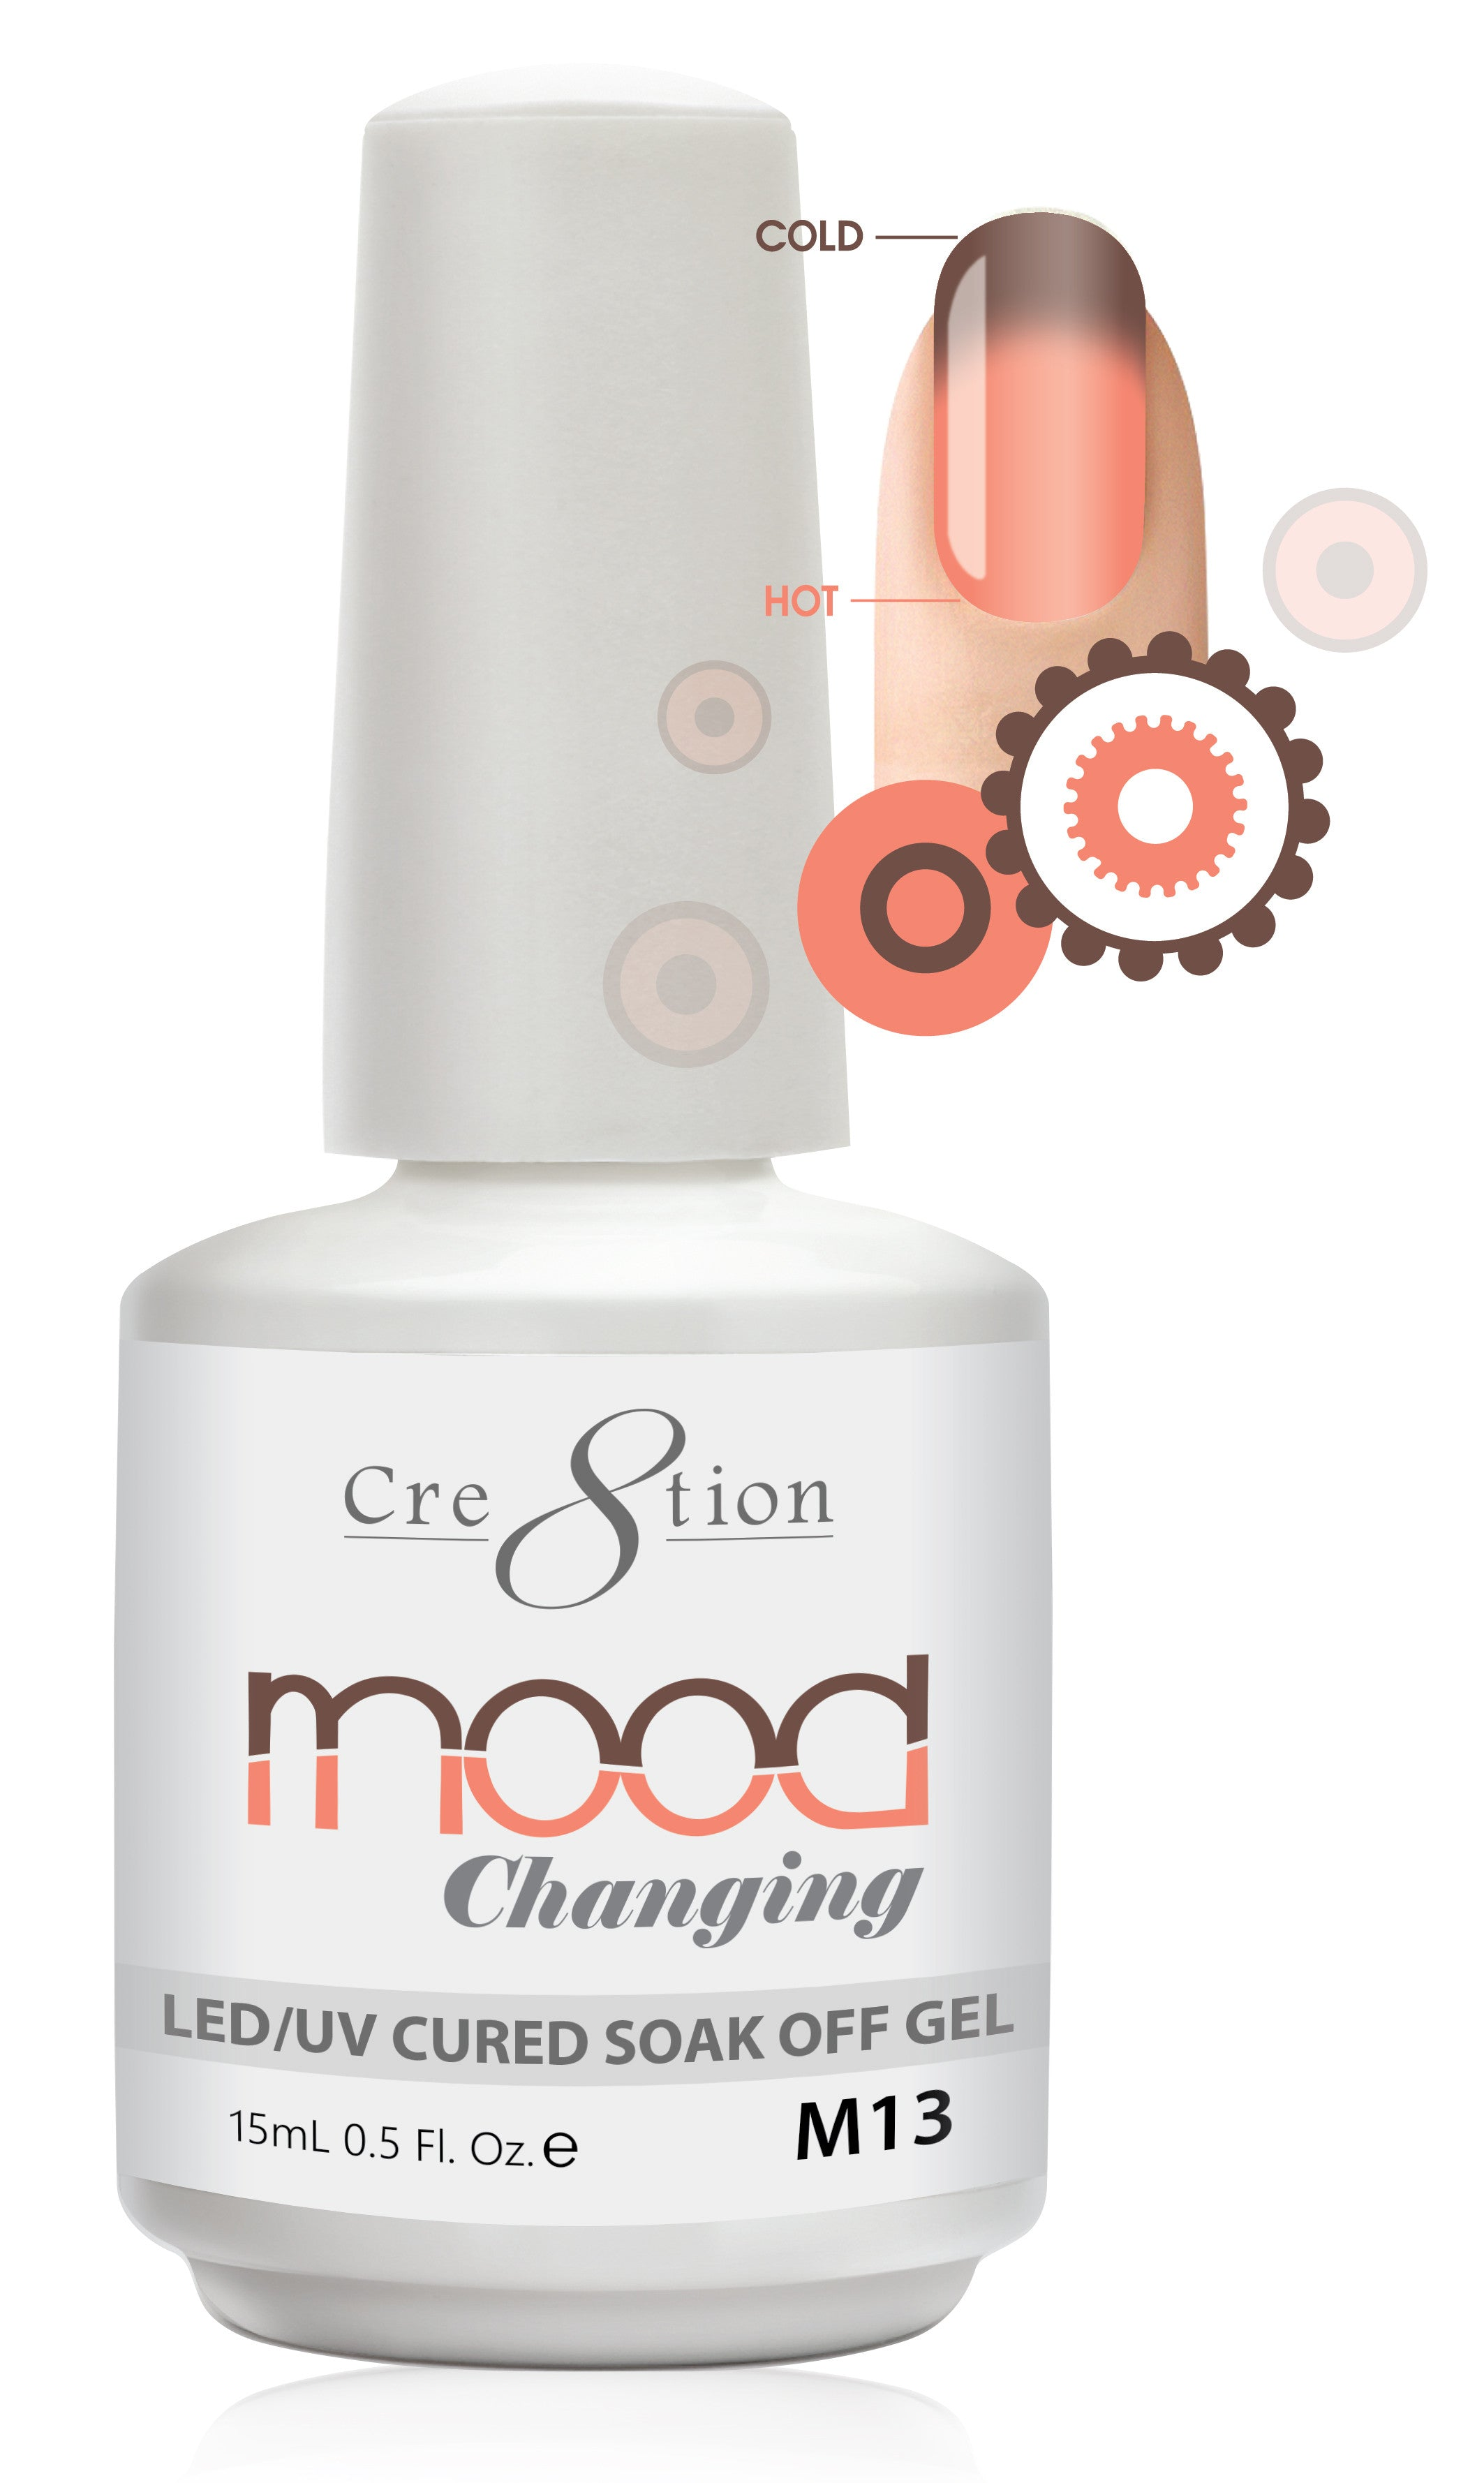 Cre8tion Mood Changing Soak Off Gel M13-Glitter